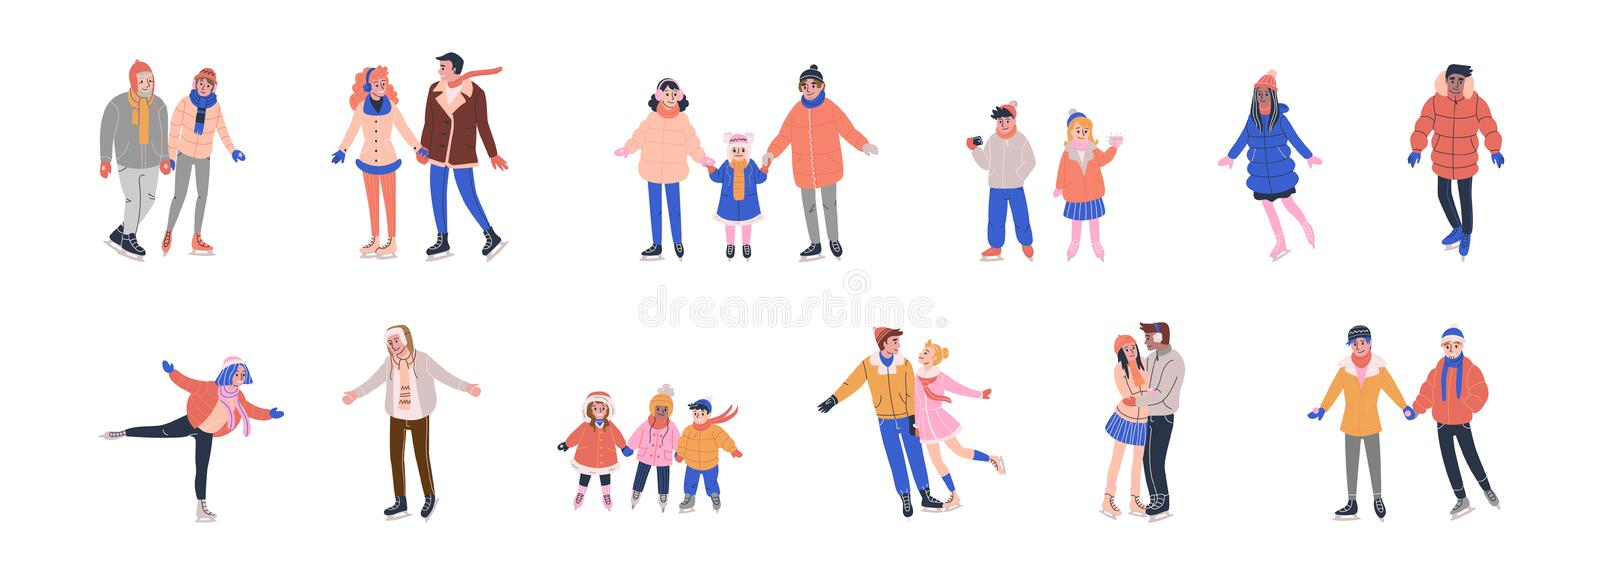 Collection of tiny skating people royalty free illustration